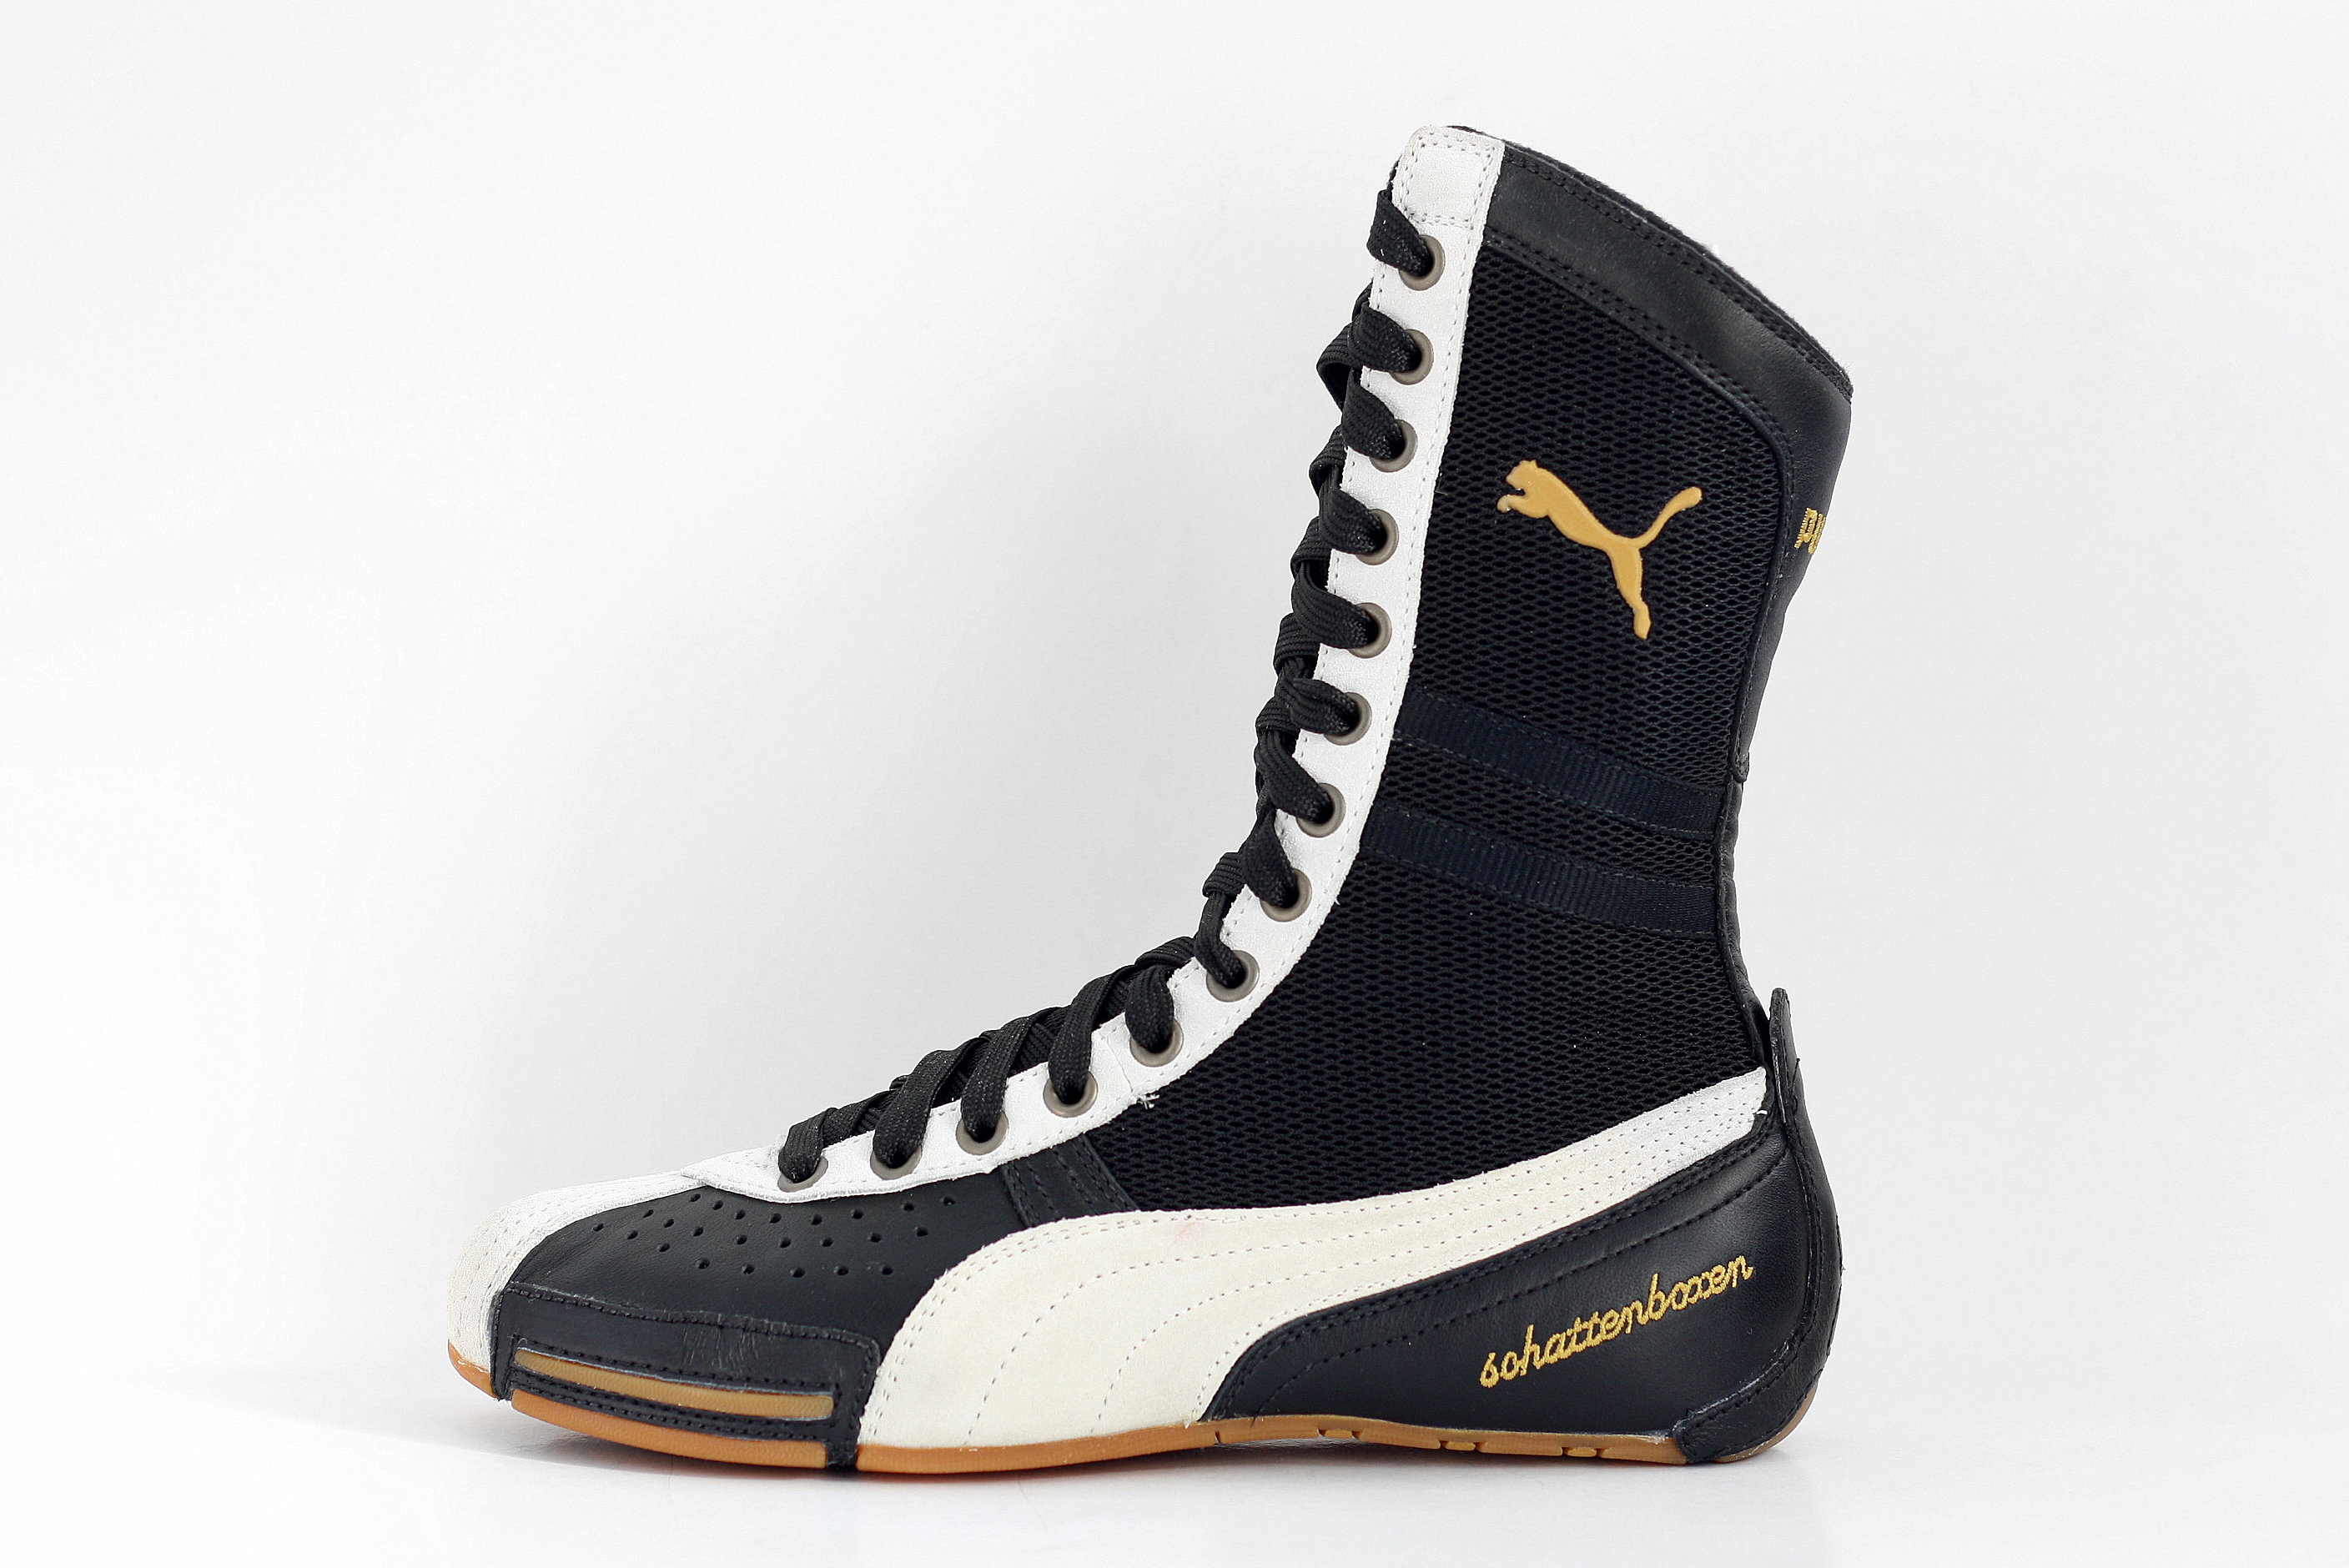 NOS vintage Puma Schattenboxen hi tops boots OG deadstock trainers sneakers Black White boxing Wrestling Combats MMA shoes kicks 90s